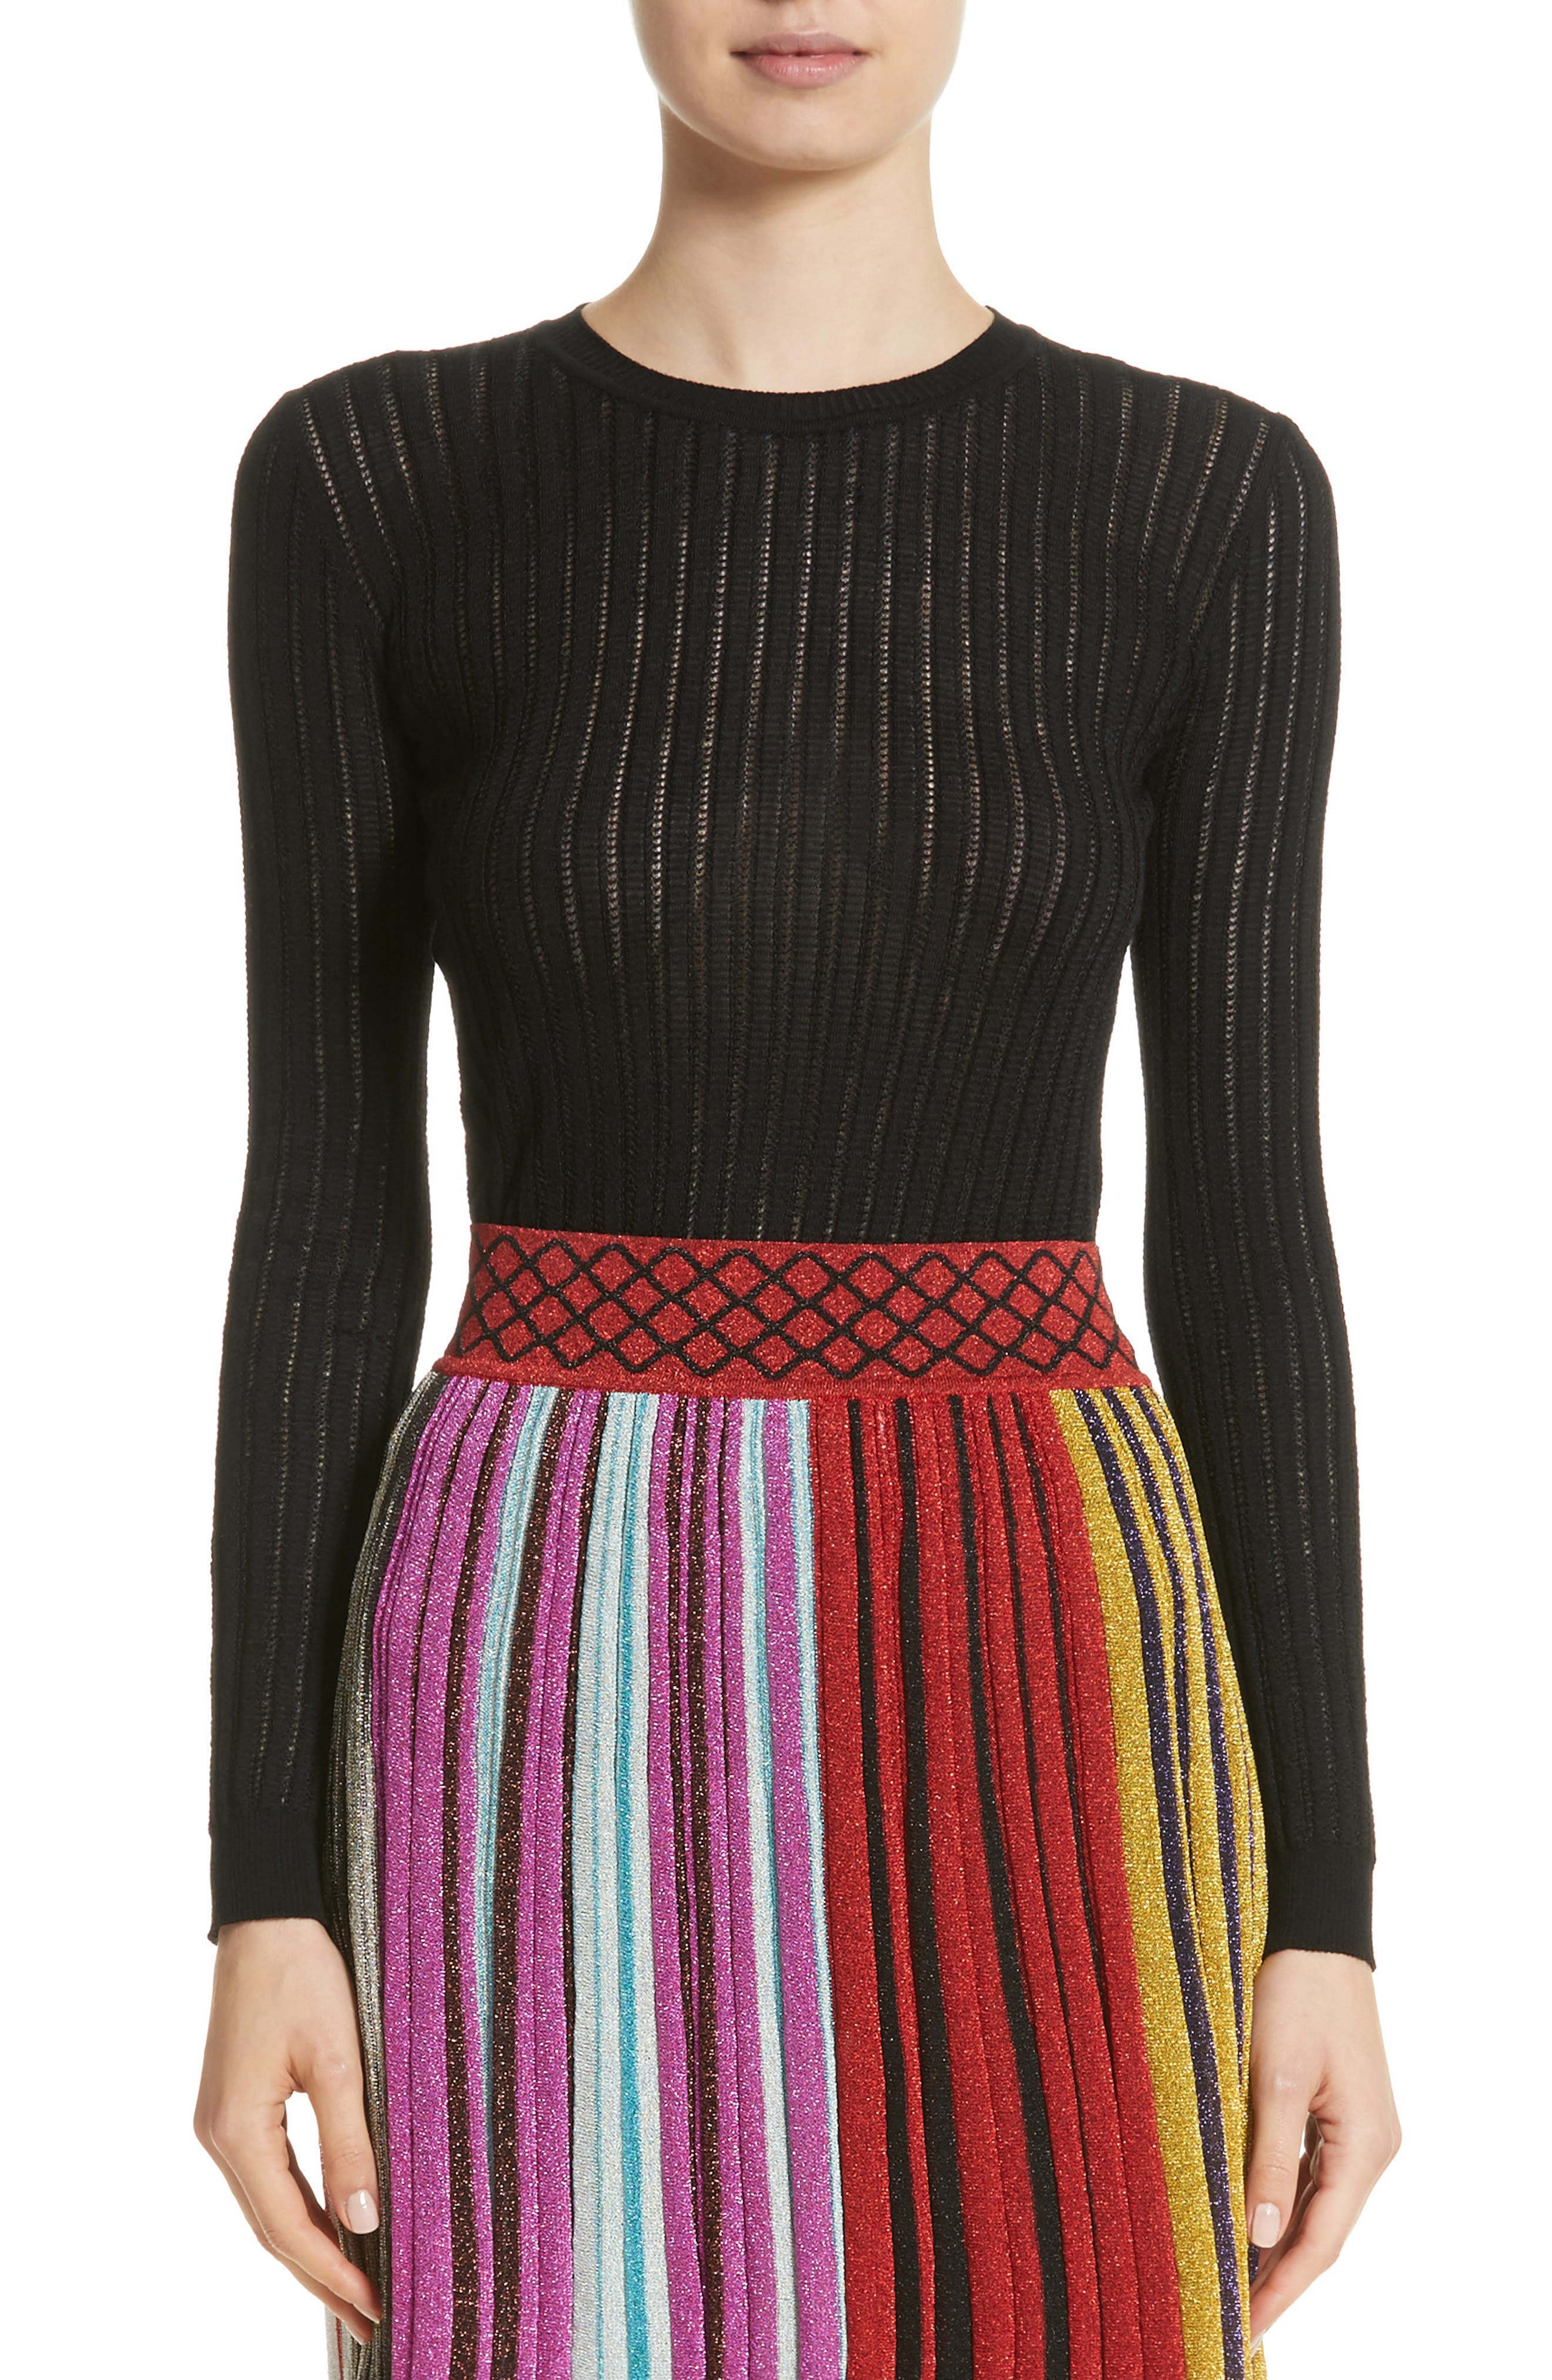 Knit Wool Blend Sweater,                         Main,                         color, Black